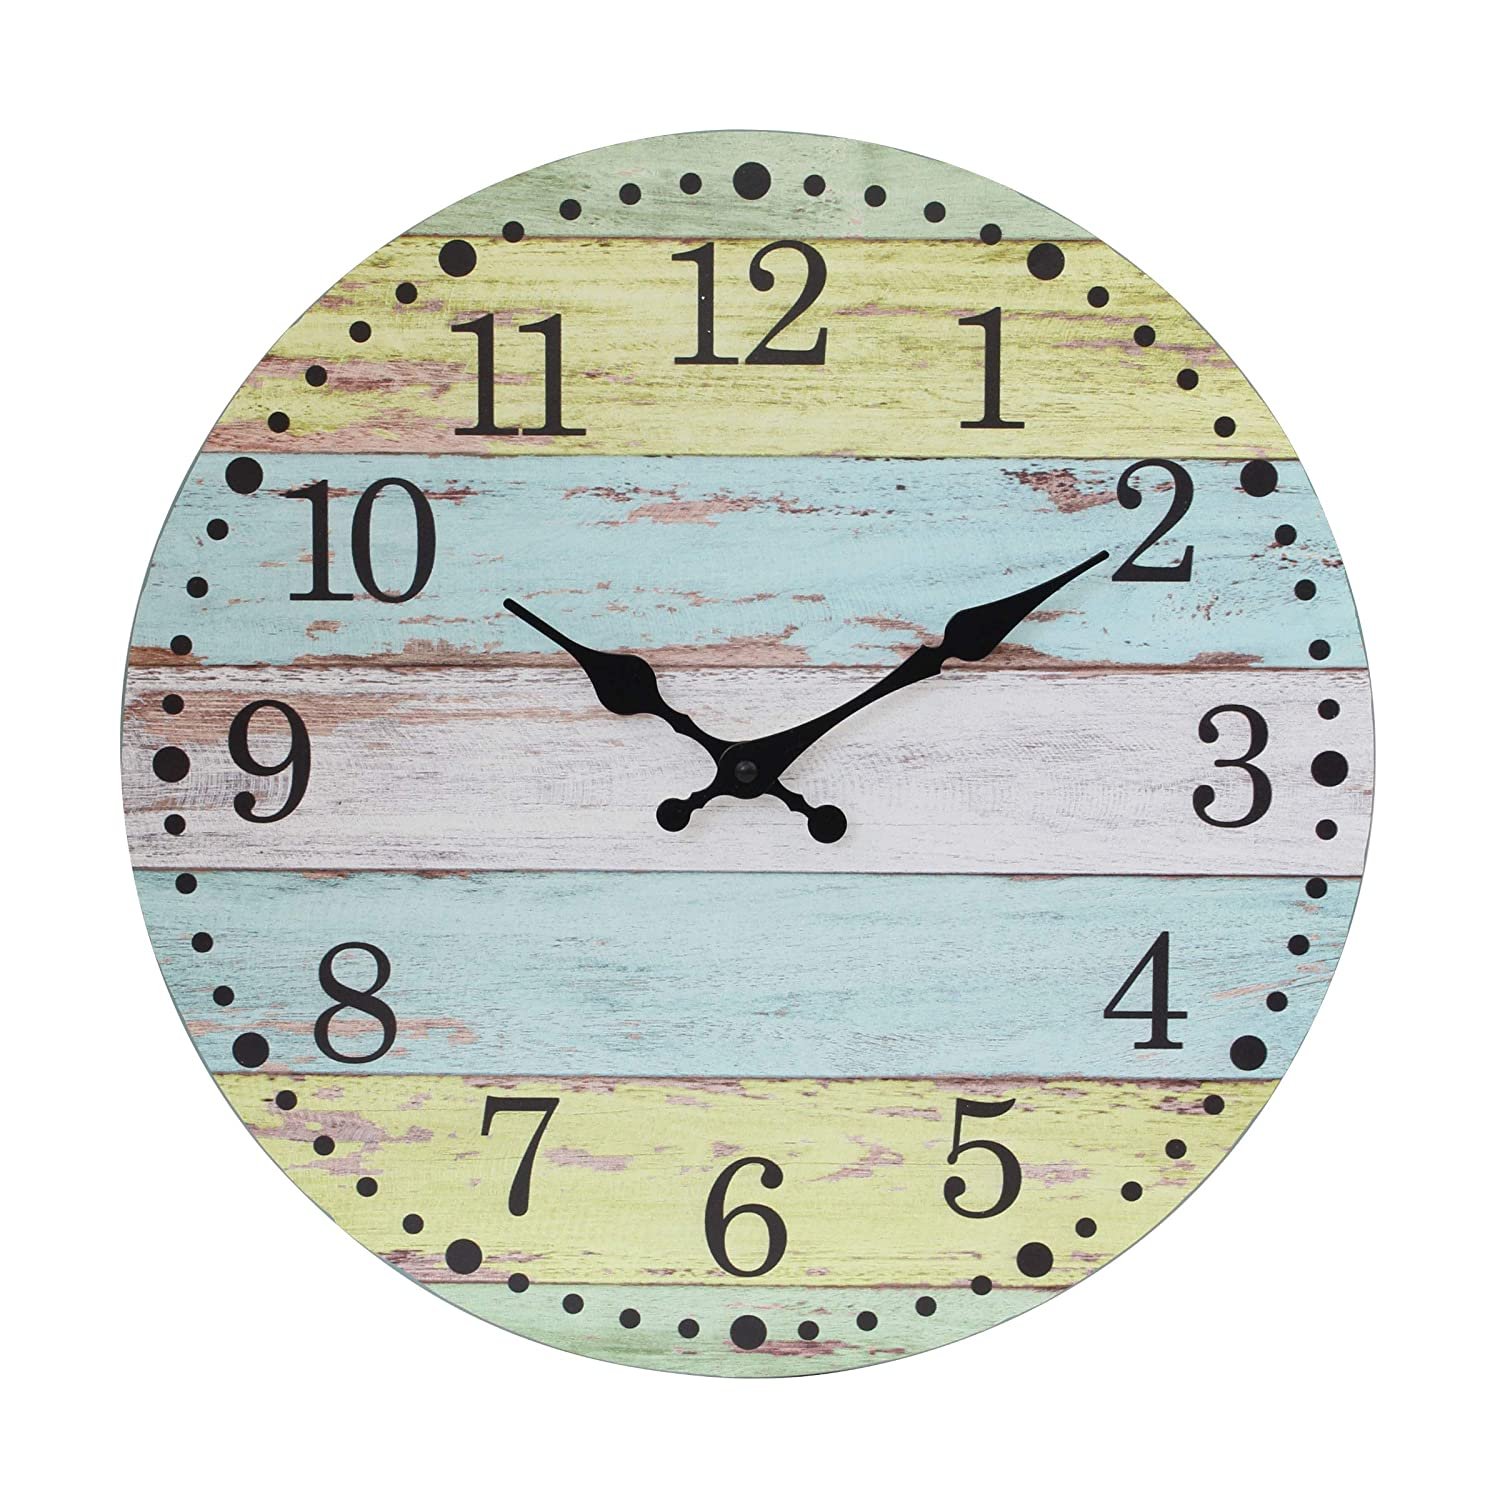 Stonebriar Vintage Farmhouse Worn 14 Inch Round Hanging Clock, Battery Operated, Rustic Wall Decor for The Living Room, Kitchen, Bedroom, and Patio, Light Blue/Yellow